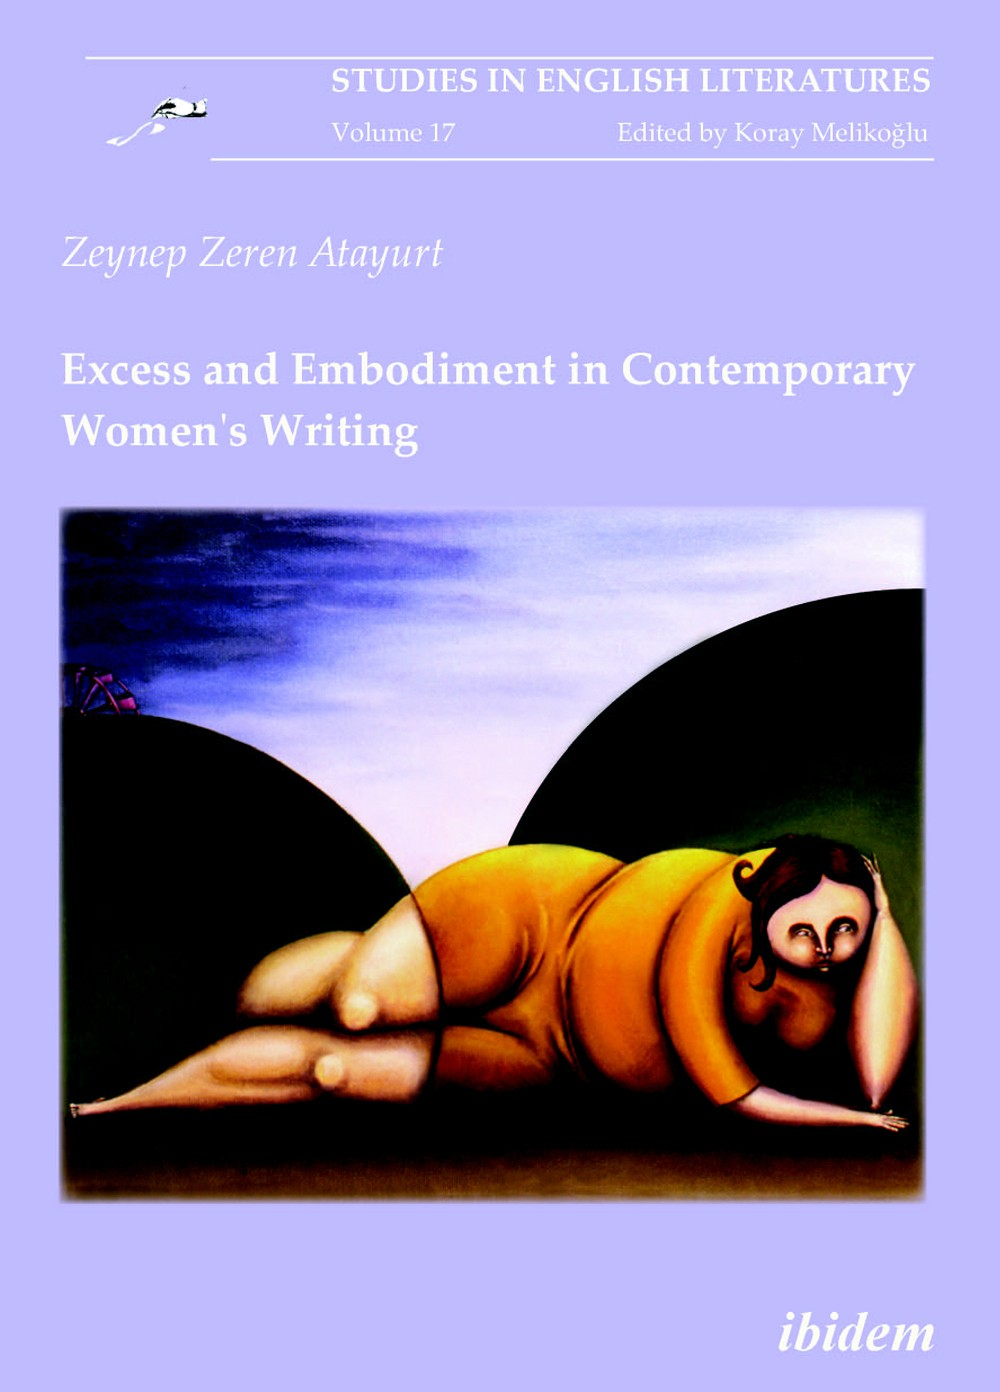 Excess and Embodiment in Contemporary Women's Writing